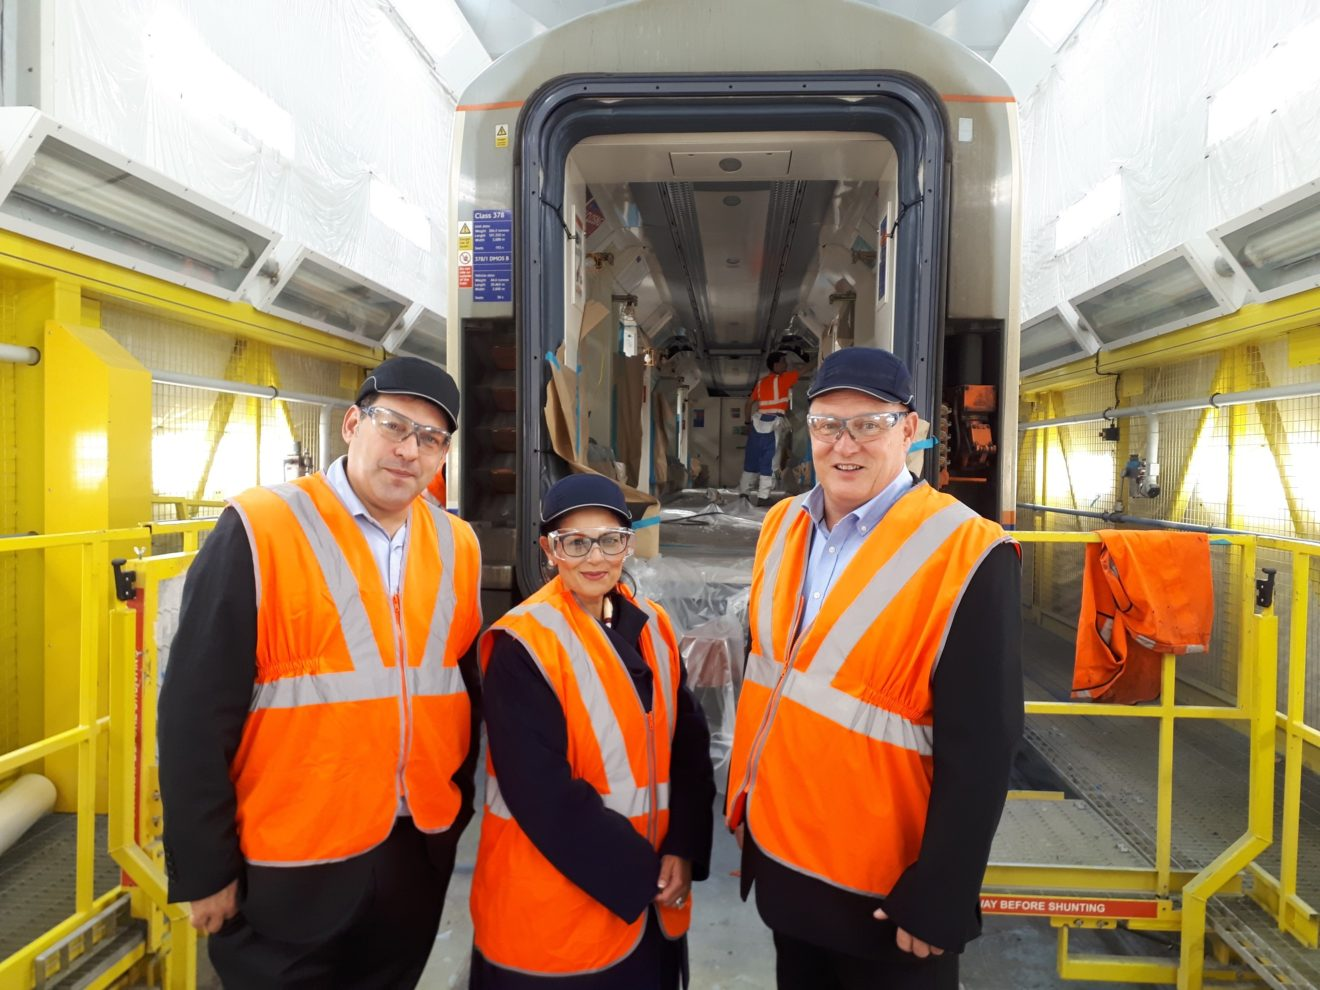 Priti Patel becomes latest Rail Fellow after hands-on day on rail site